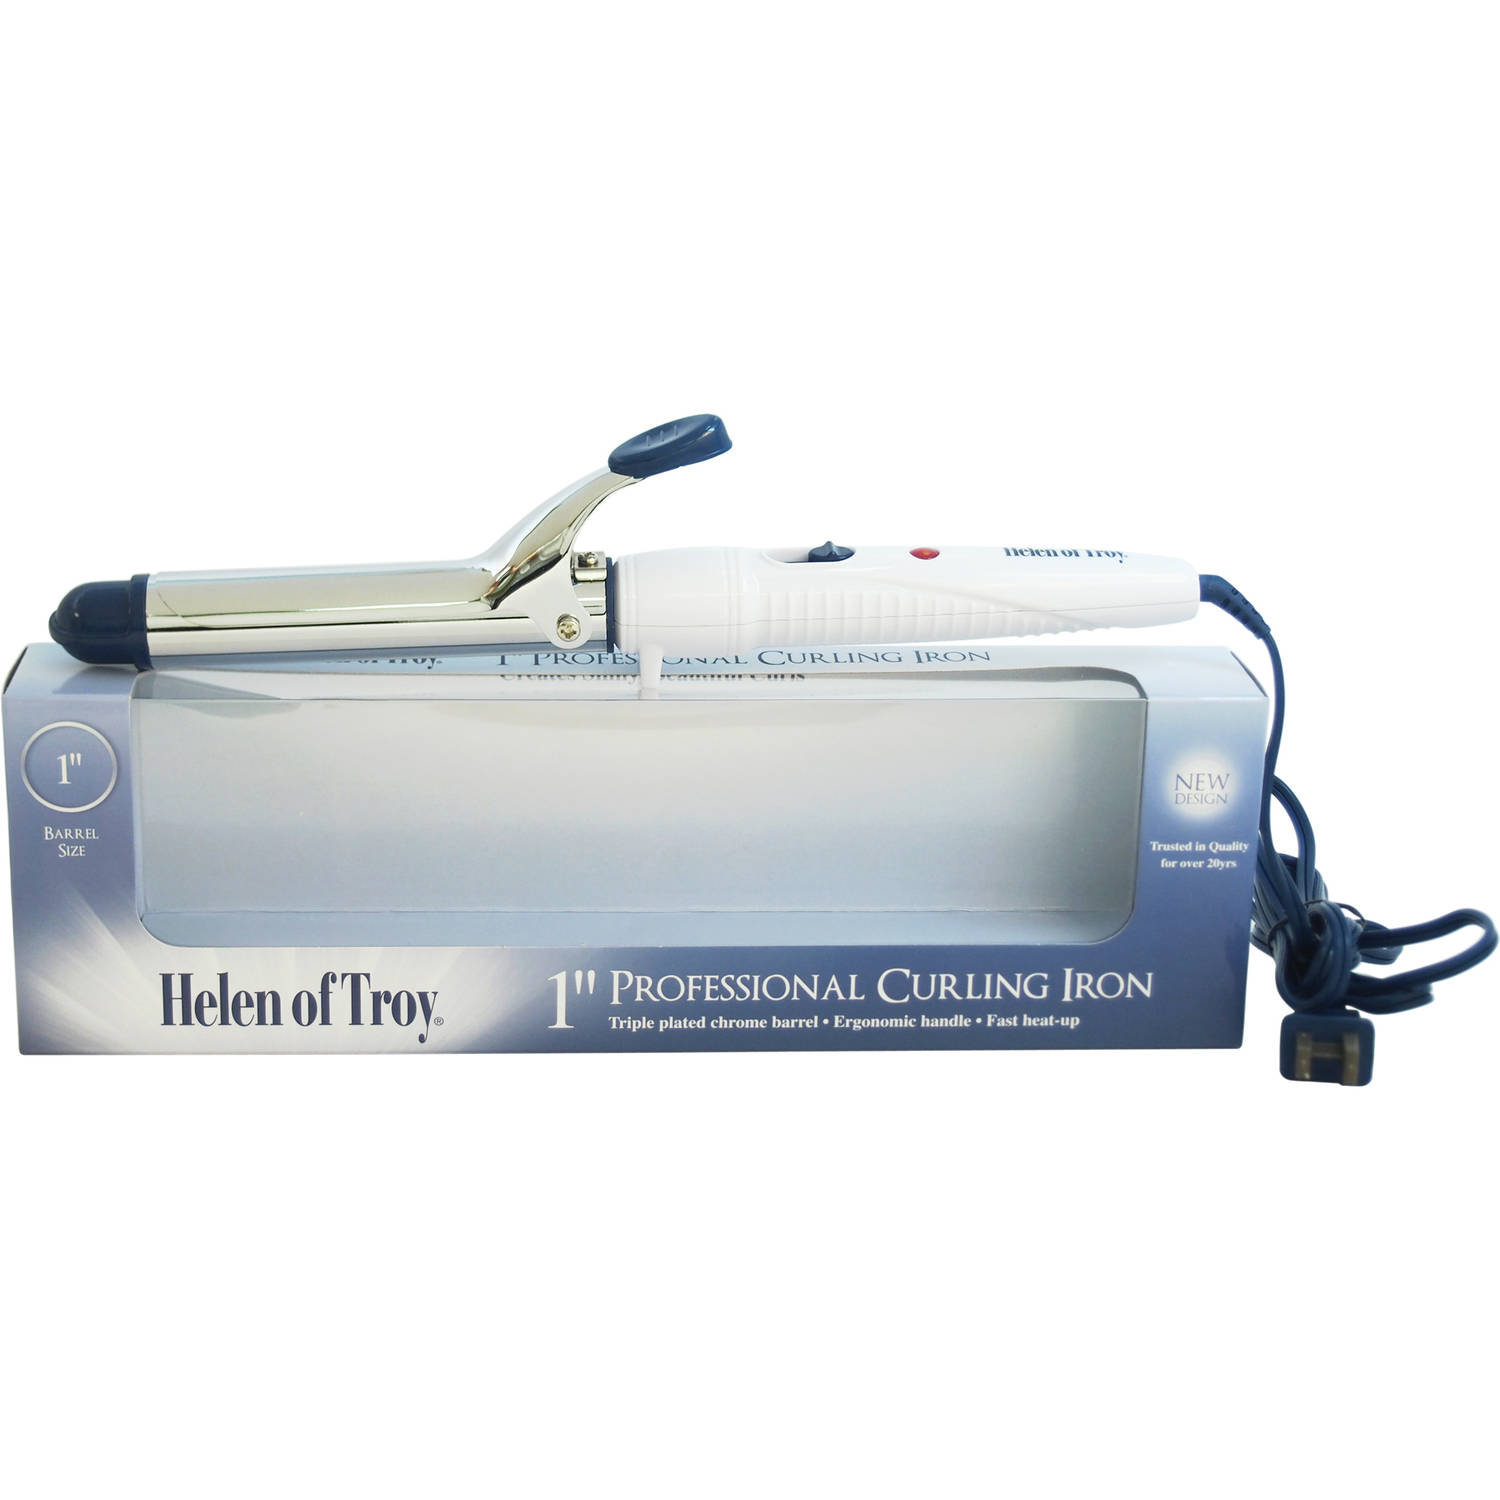 "Helen Of Troy Professional Model #1581 White 1"" for Unisex Curling Iron"